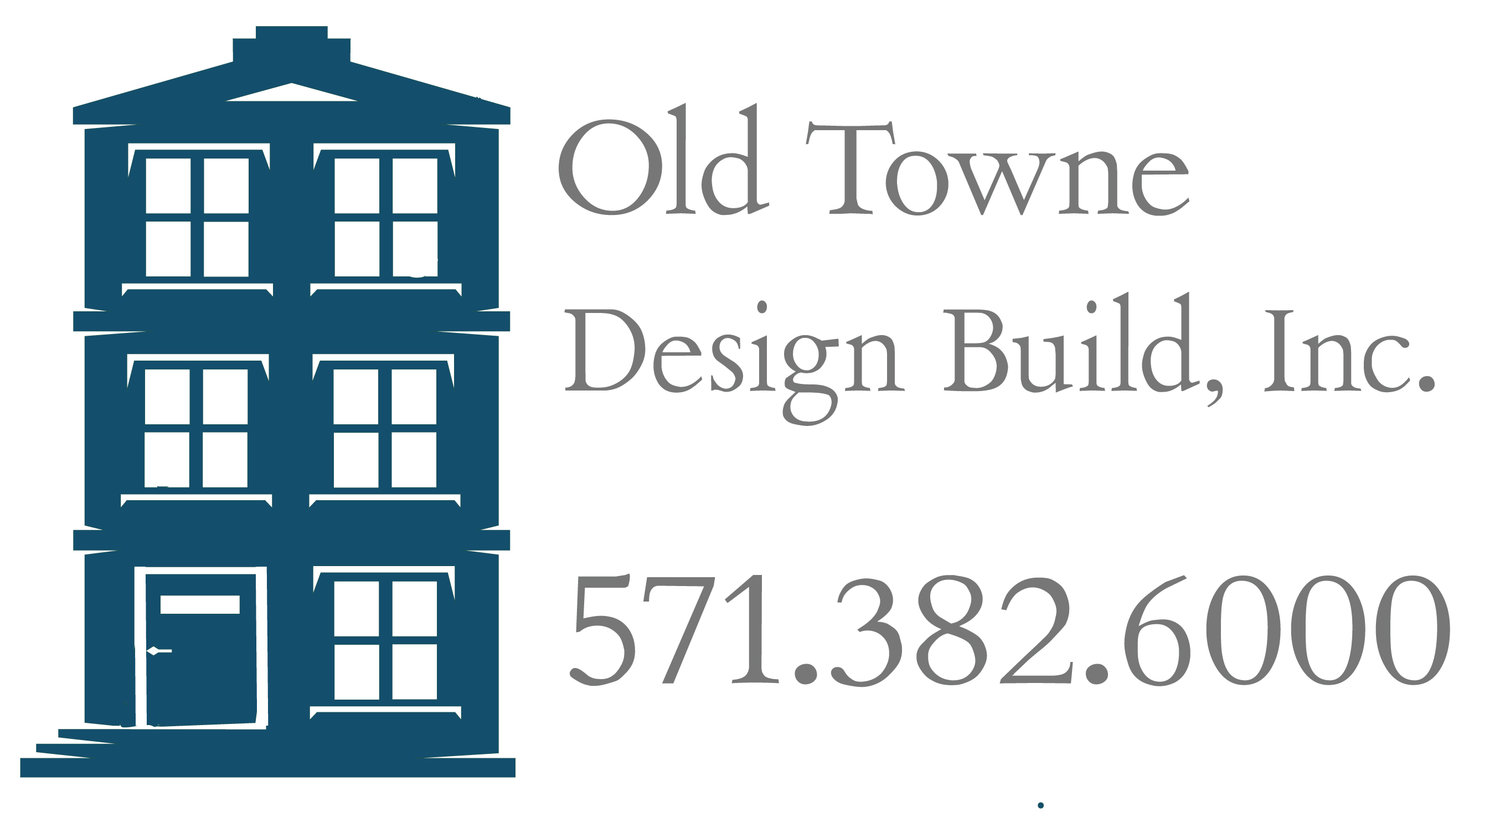 Old Towne Design Build, Inc.